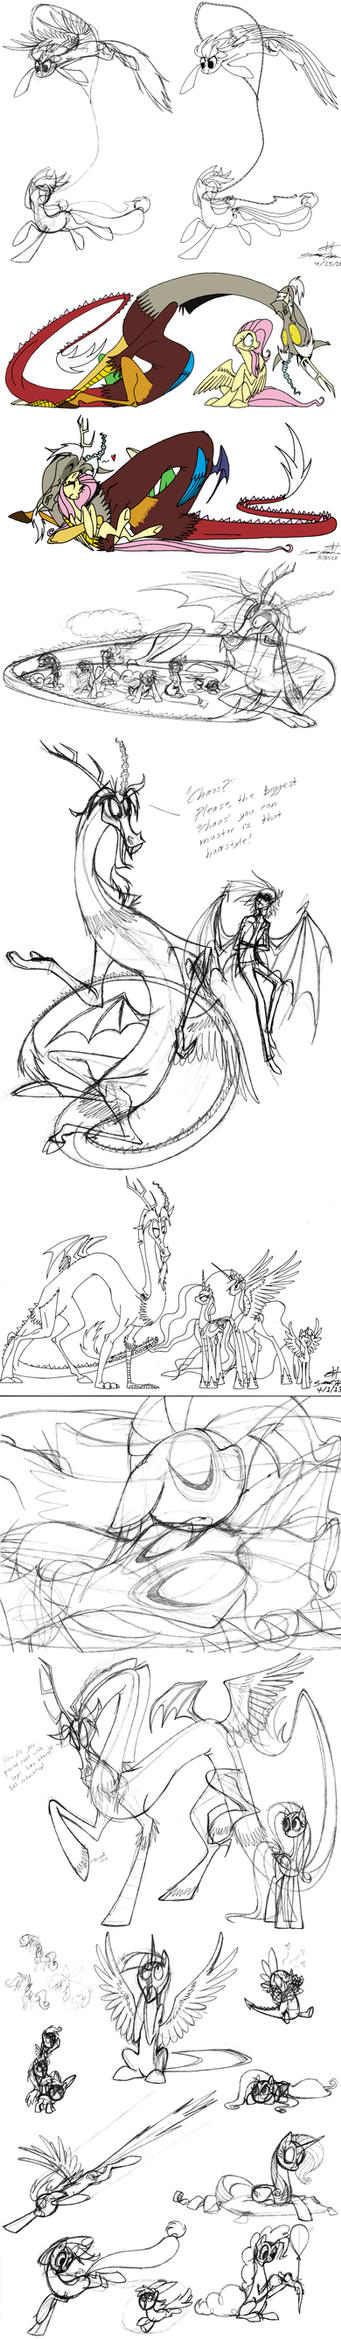 Some old pony sketches by grievousfan